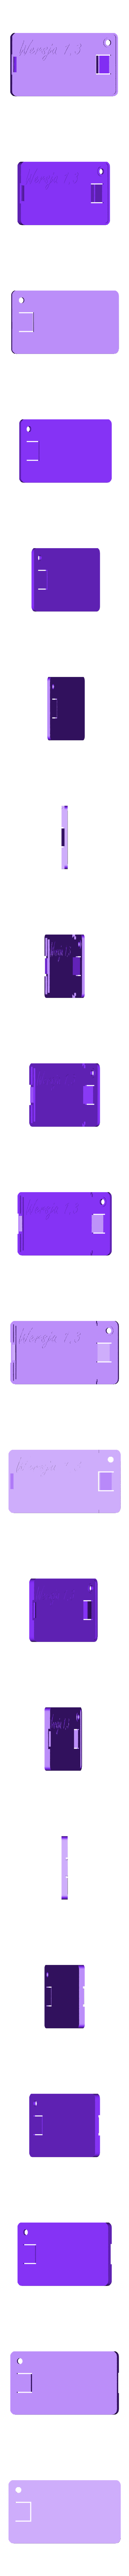 Karta Etui Wersja 1.3.stl Download free STL file identity / bank card case / holder • 3D printing template, pawelbanan_1991